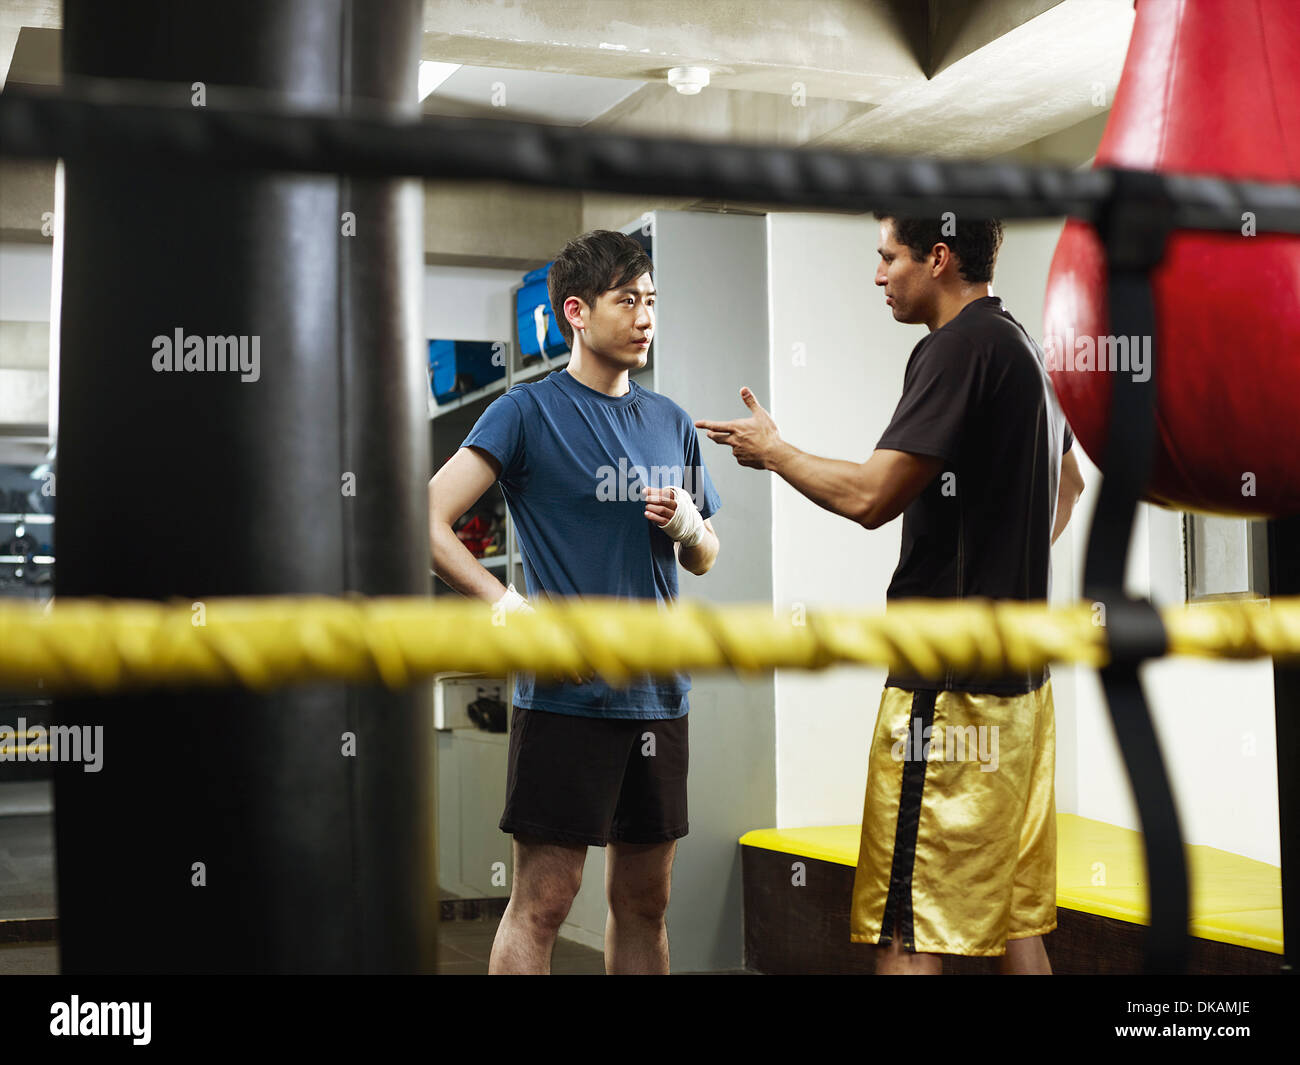 Boxers having conversation in changing room - Stock Image